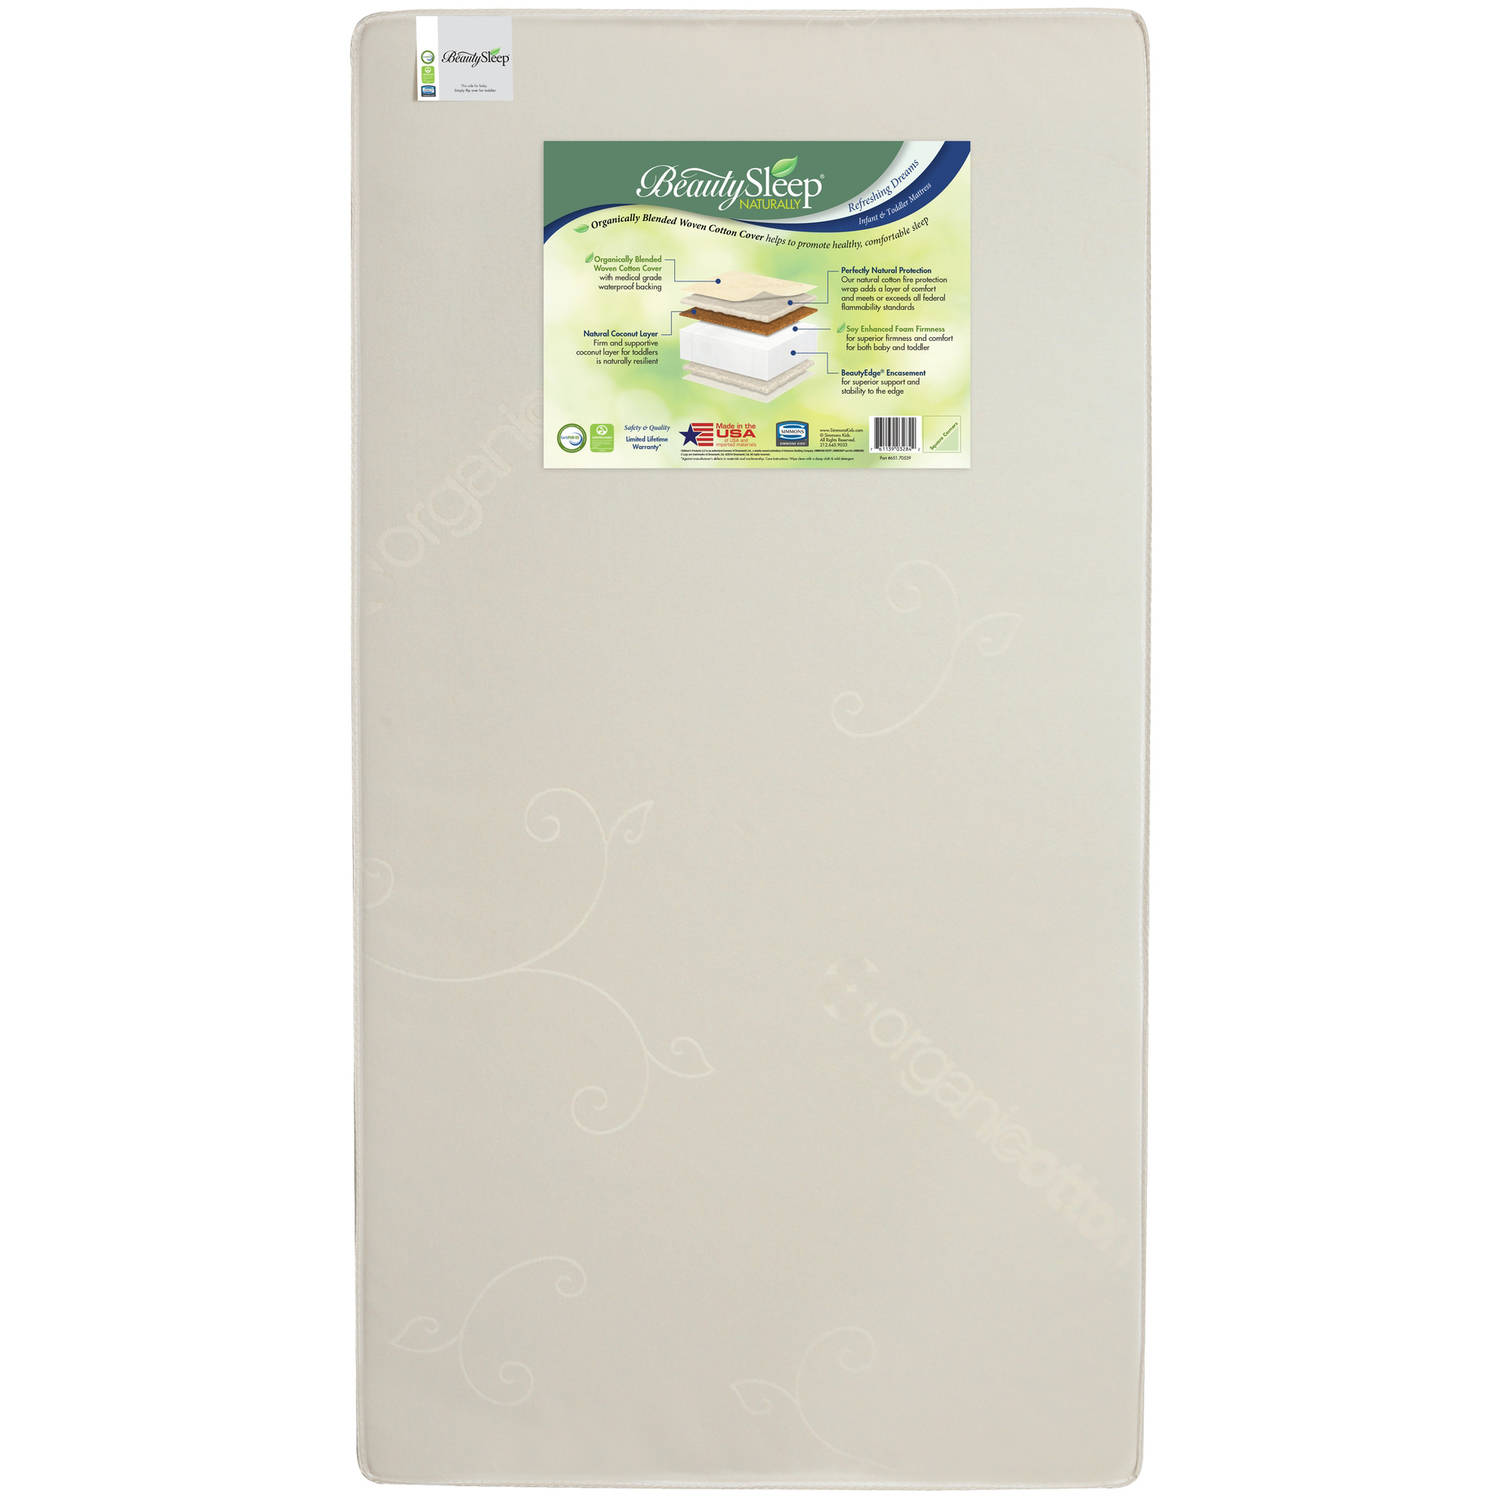 BeautySleep Naturally Refreshing Dreams Crib and Toddler Mattress by Simmons Kids by Simmons Kids